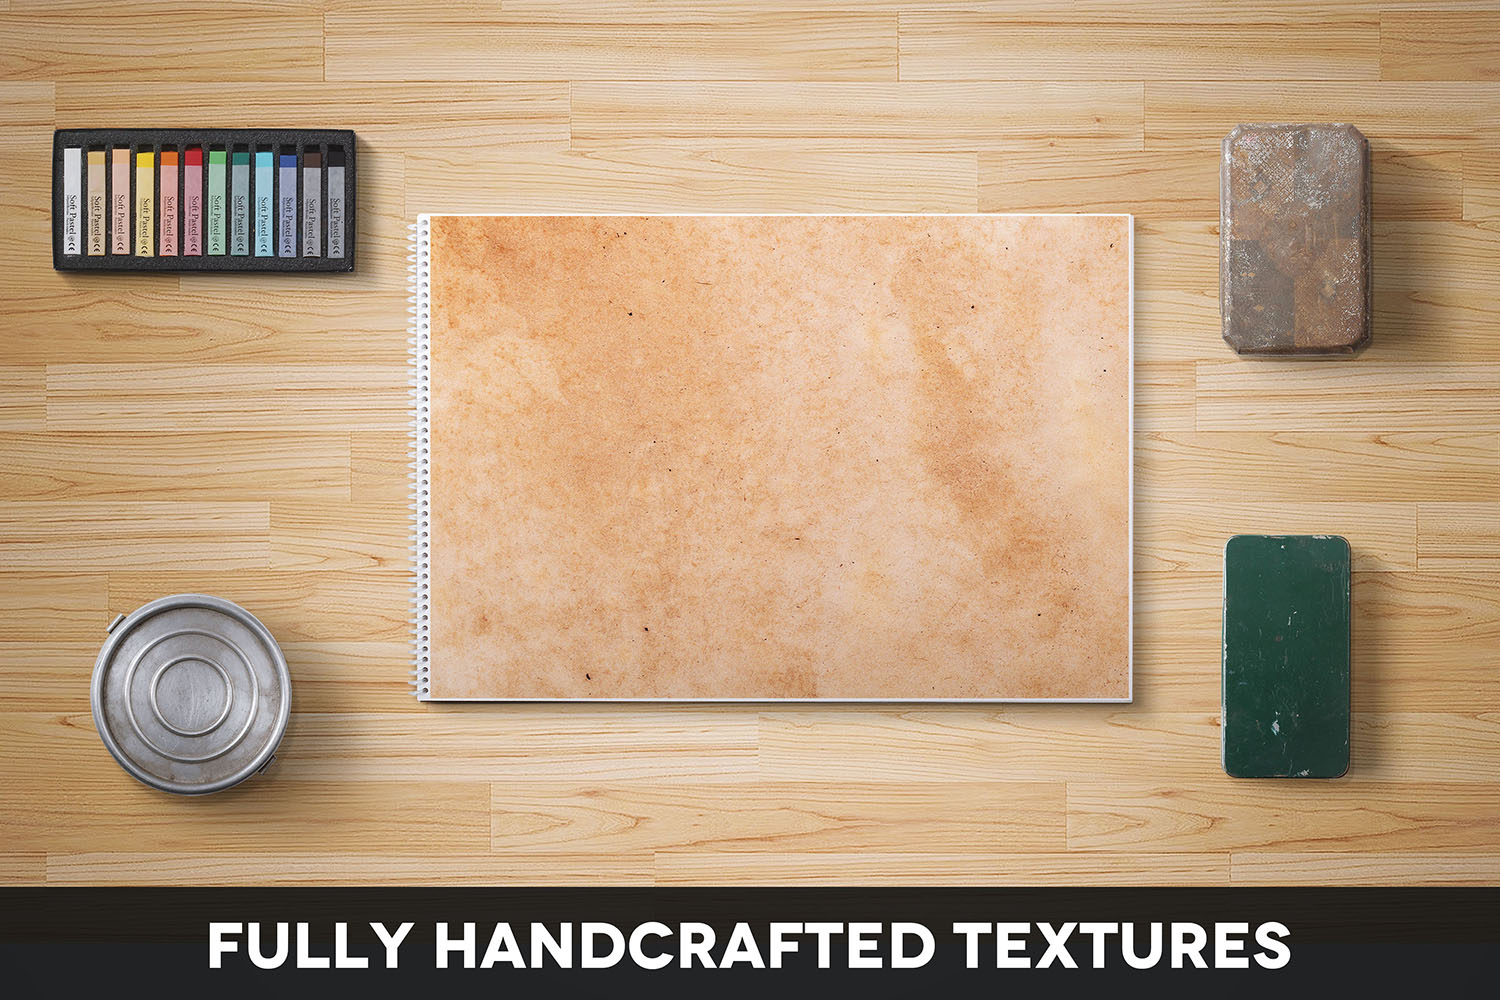 Handcrafted Vintage Paper Textures Vol. 06 example image 2